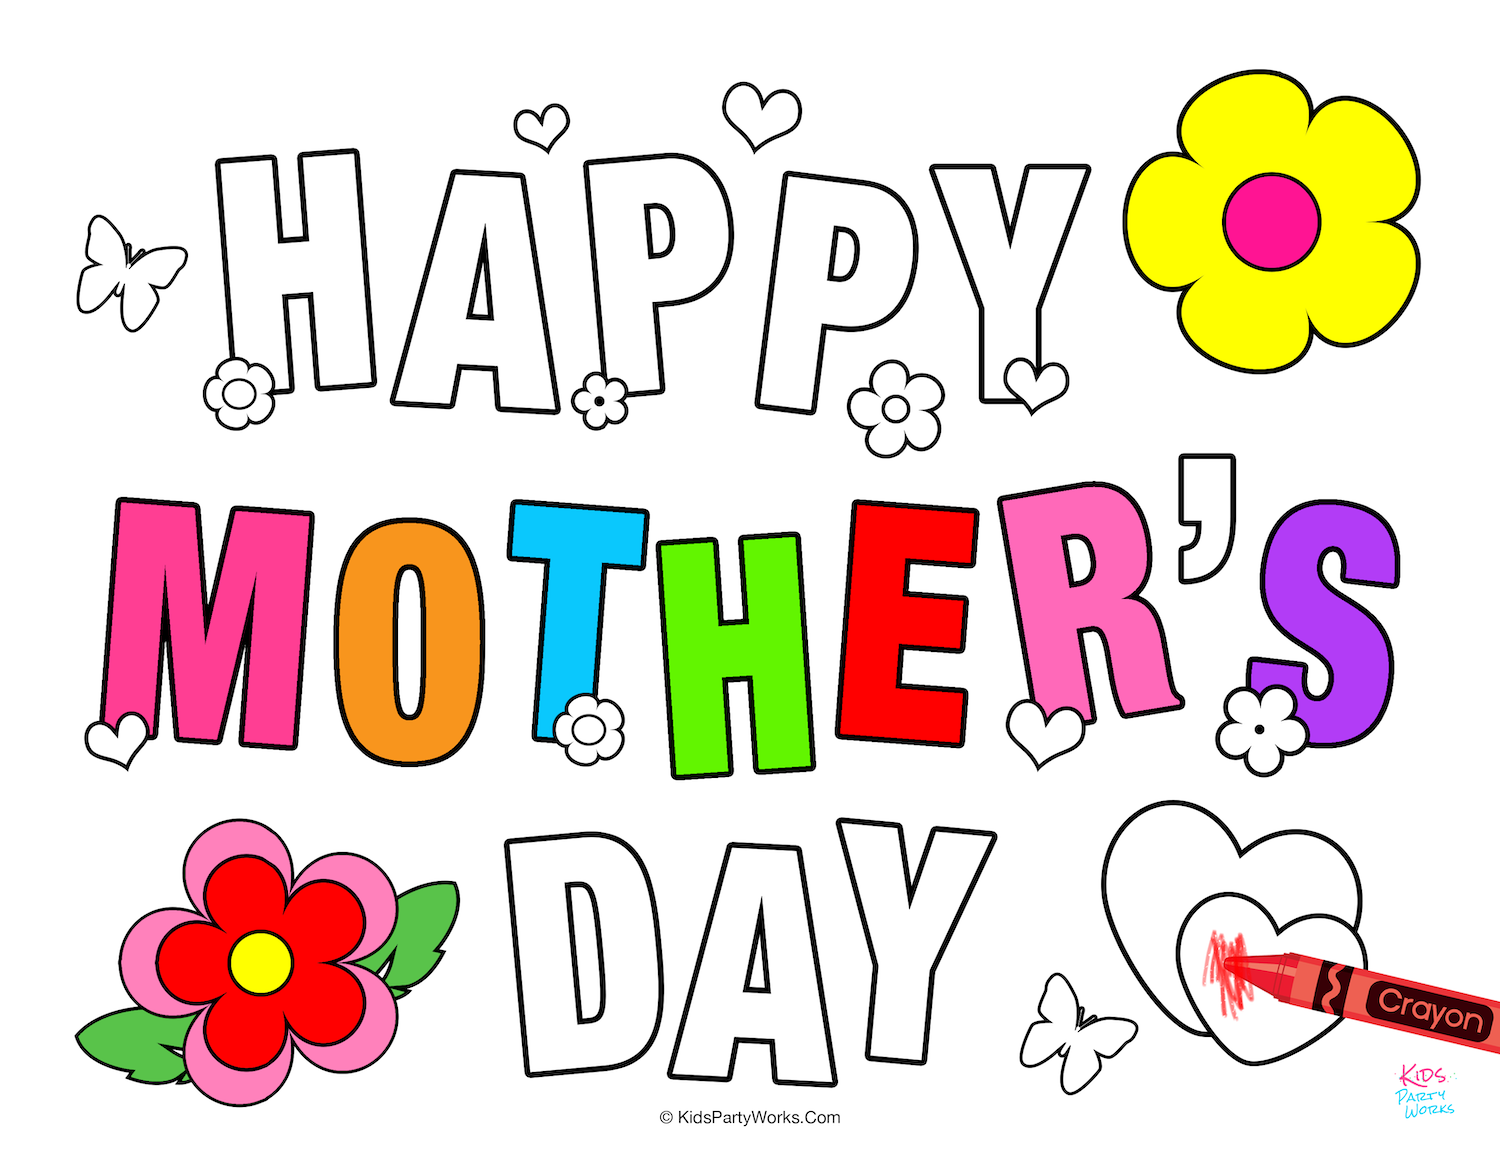 FREE Mother's Day Coloring Pages. KidsPartyWorks.Com